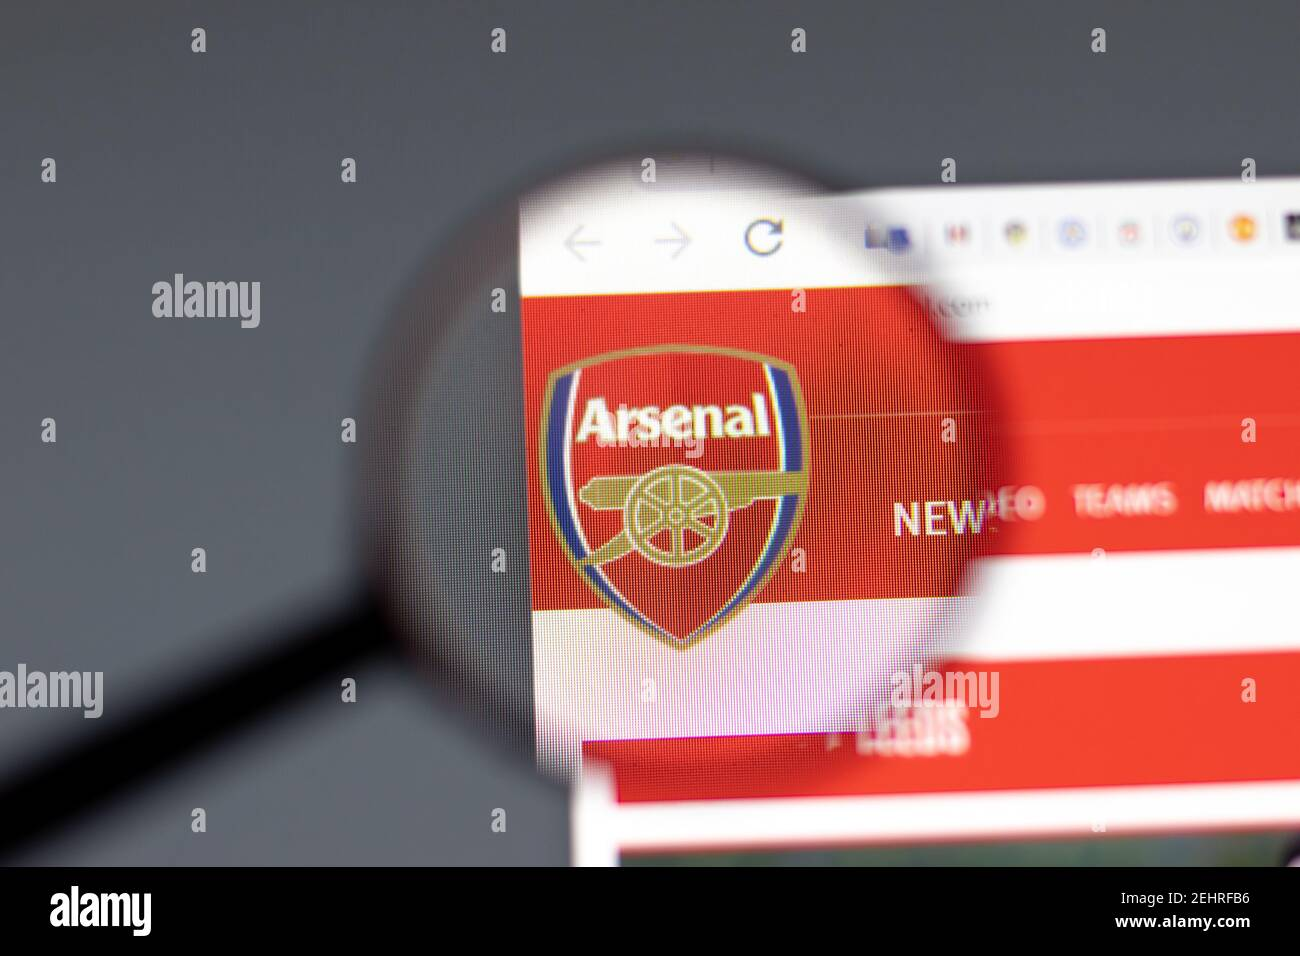 https www alamy com new york usa 15 february 2021 arsenal website in browser with company logo illustrative editorial image406804586 html